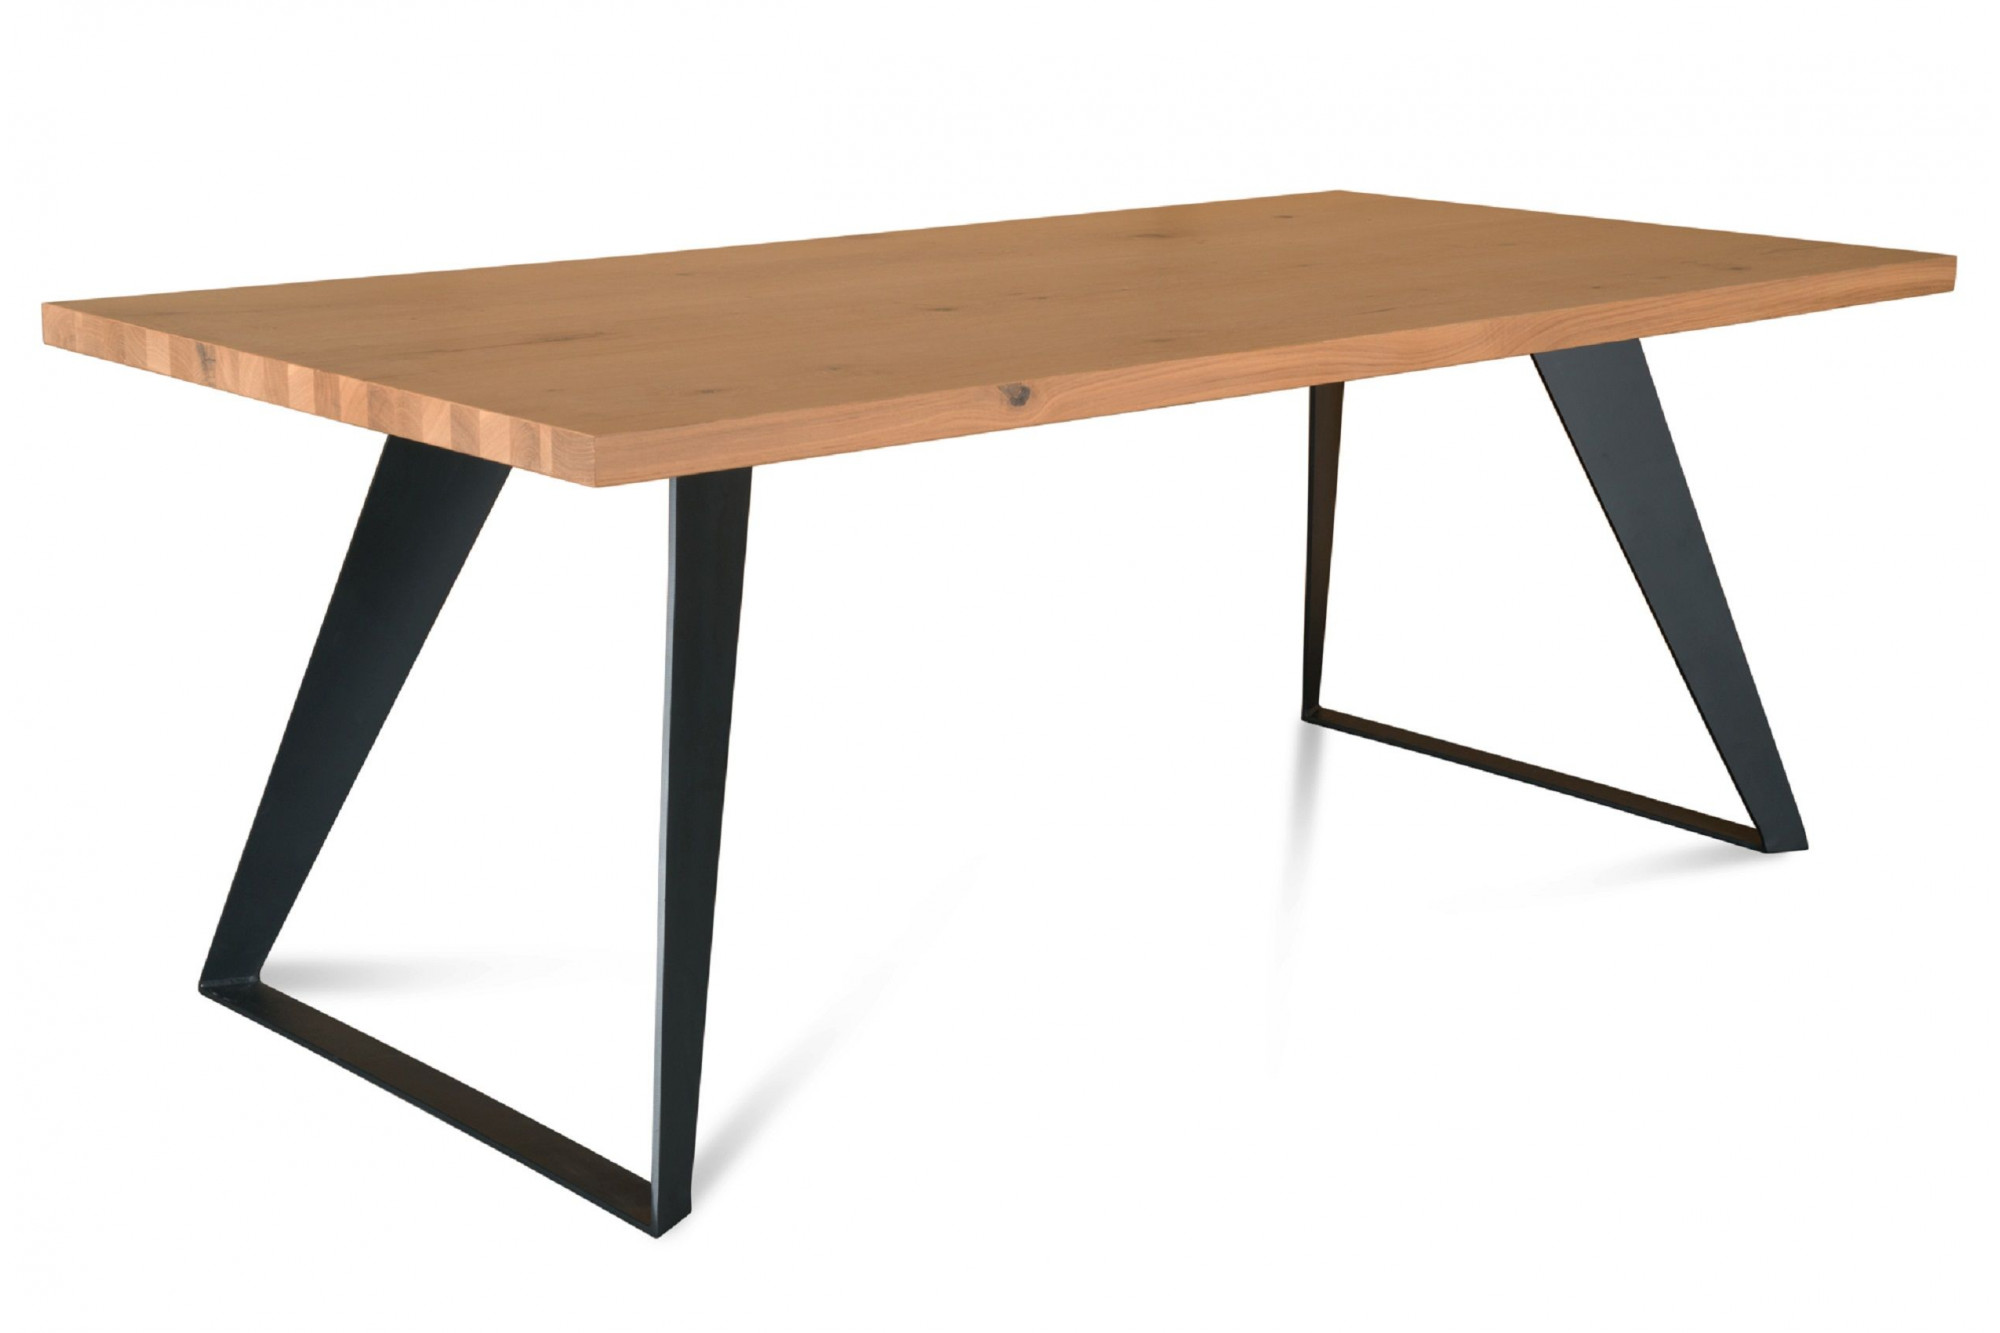 Table Bois Massif Extensible Table Extensible Rectangulaire Et Moderne Hellin